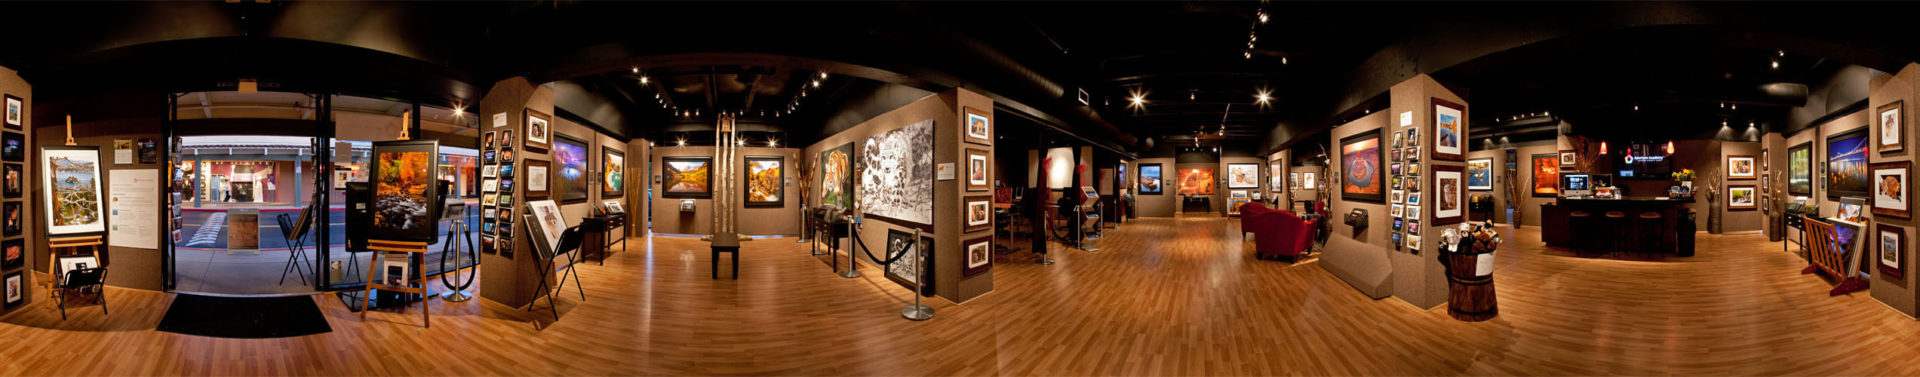 Aperture academy panoramic view of inside of gallery